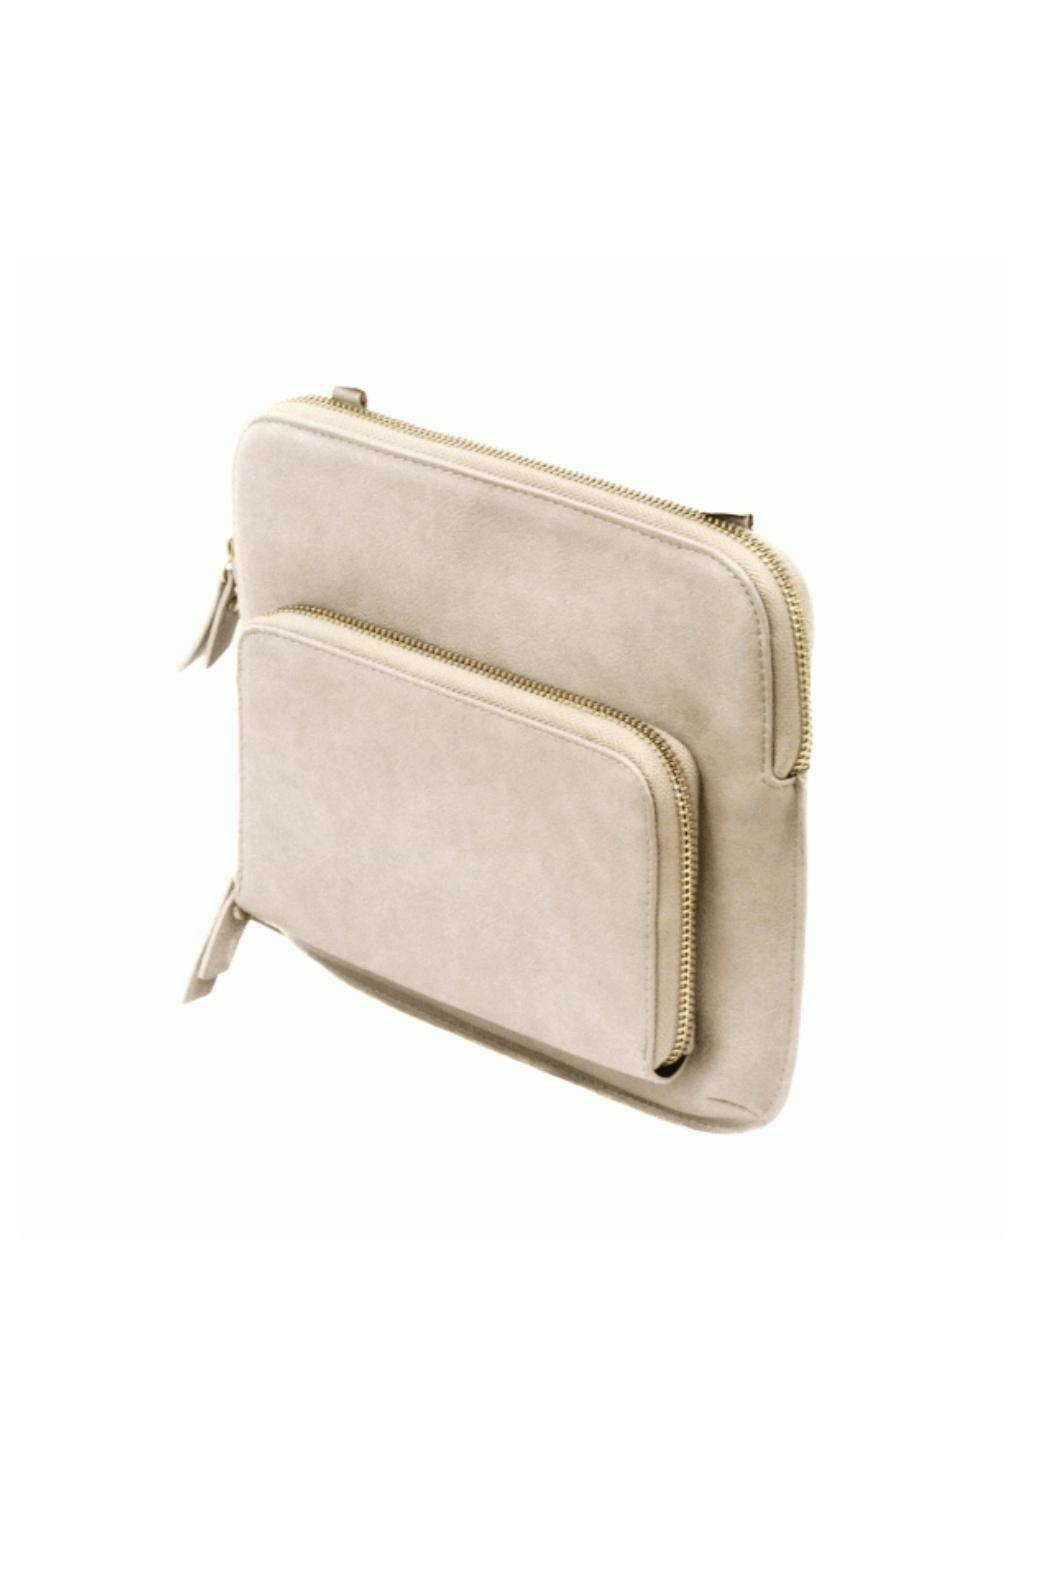 Joy Susan Bisque Nicole Crossbody - Front Cropped Image